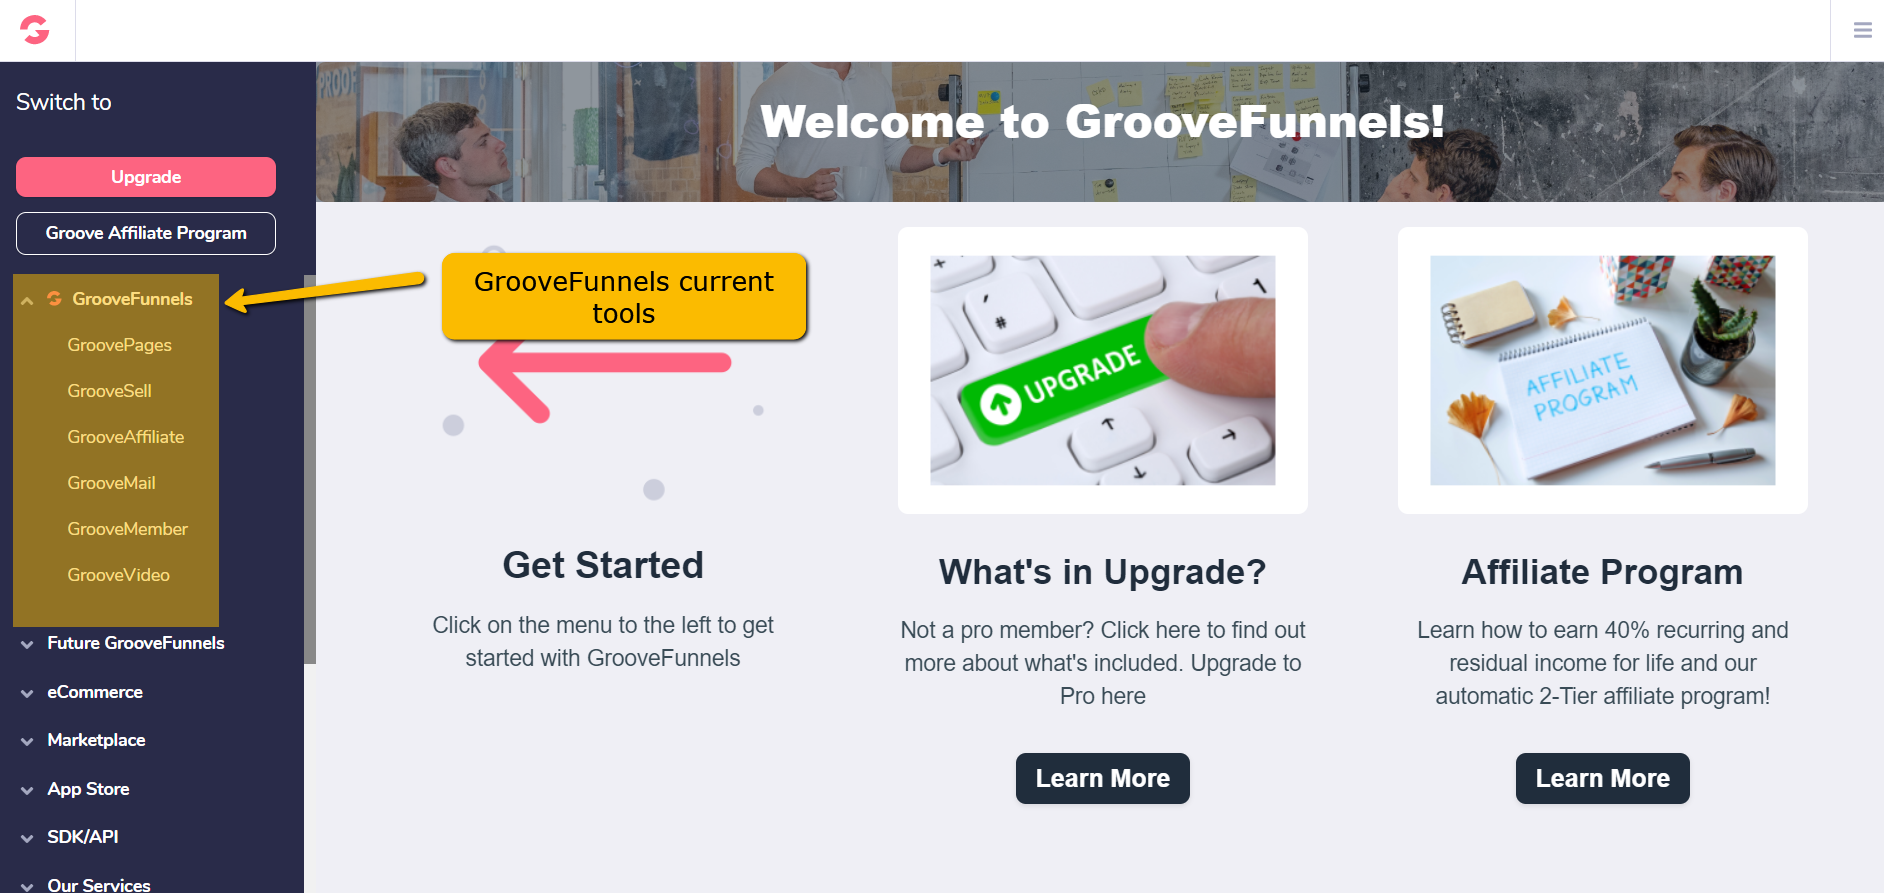 groovefunnels tools